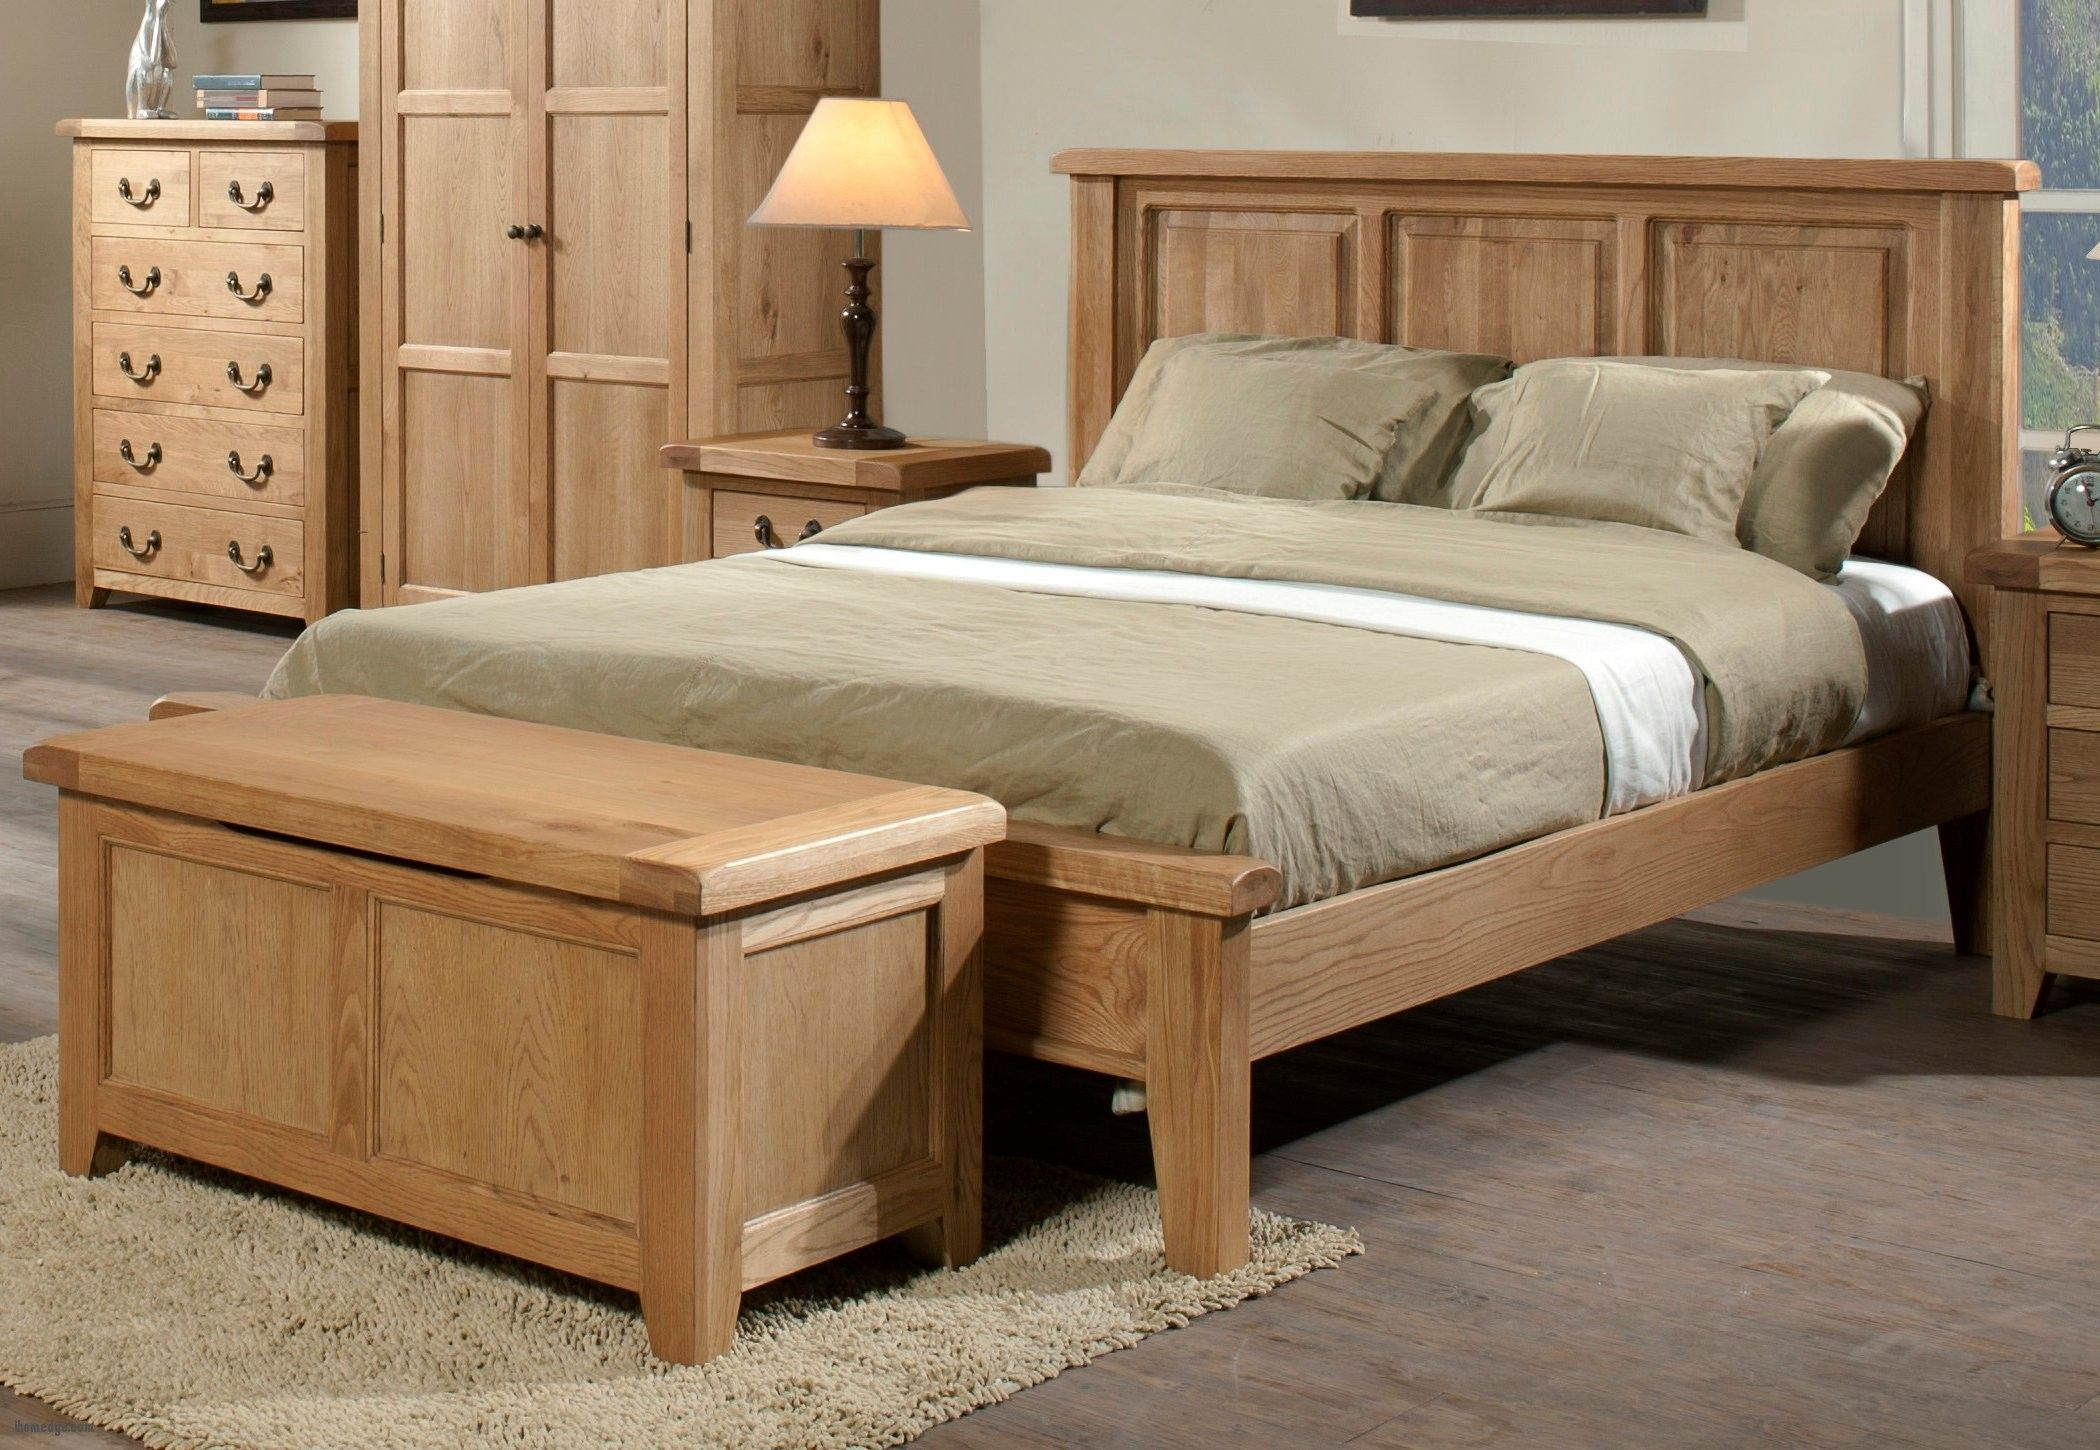 Discover Ideas About Diy Bed Frame